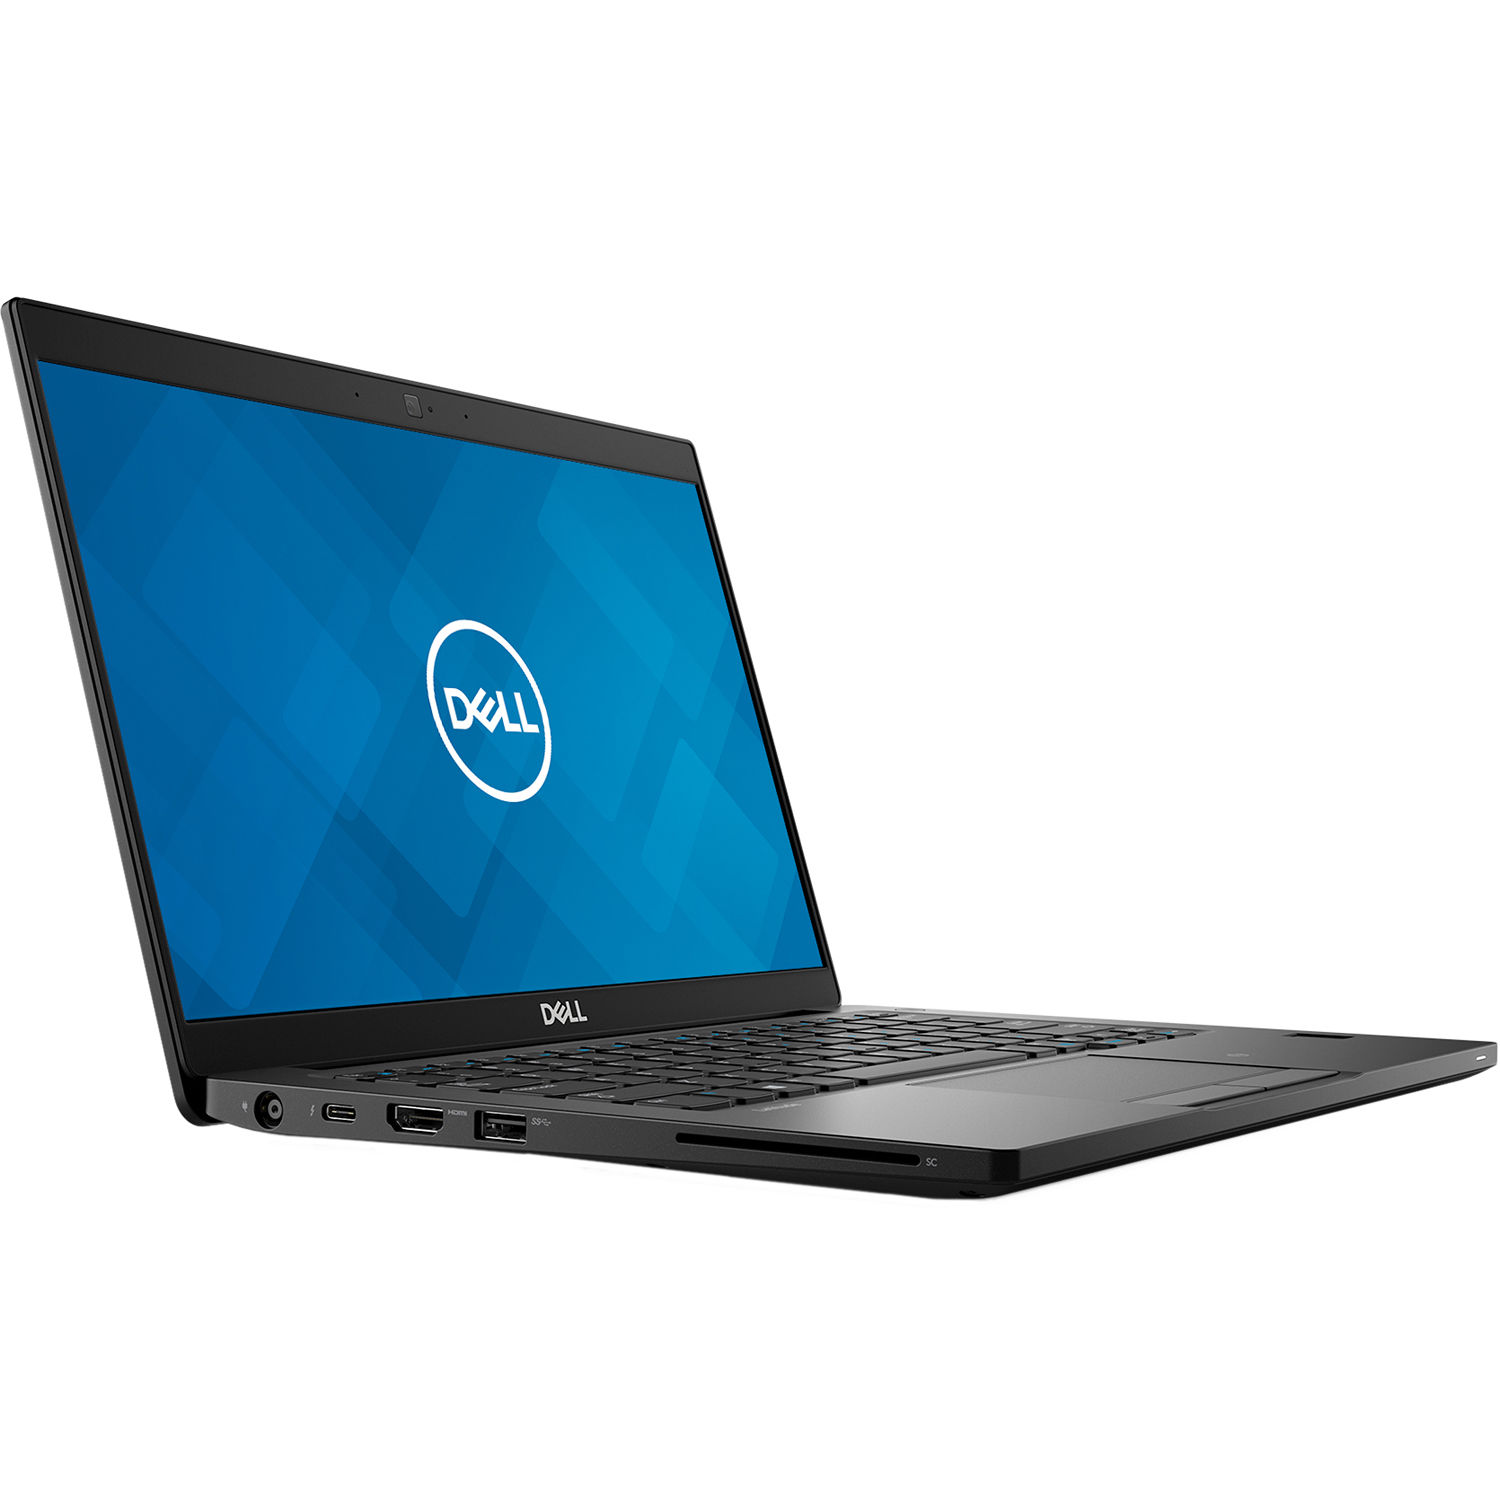 Dell Latitude 7390 Fan Always Running